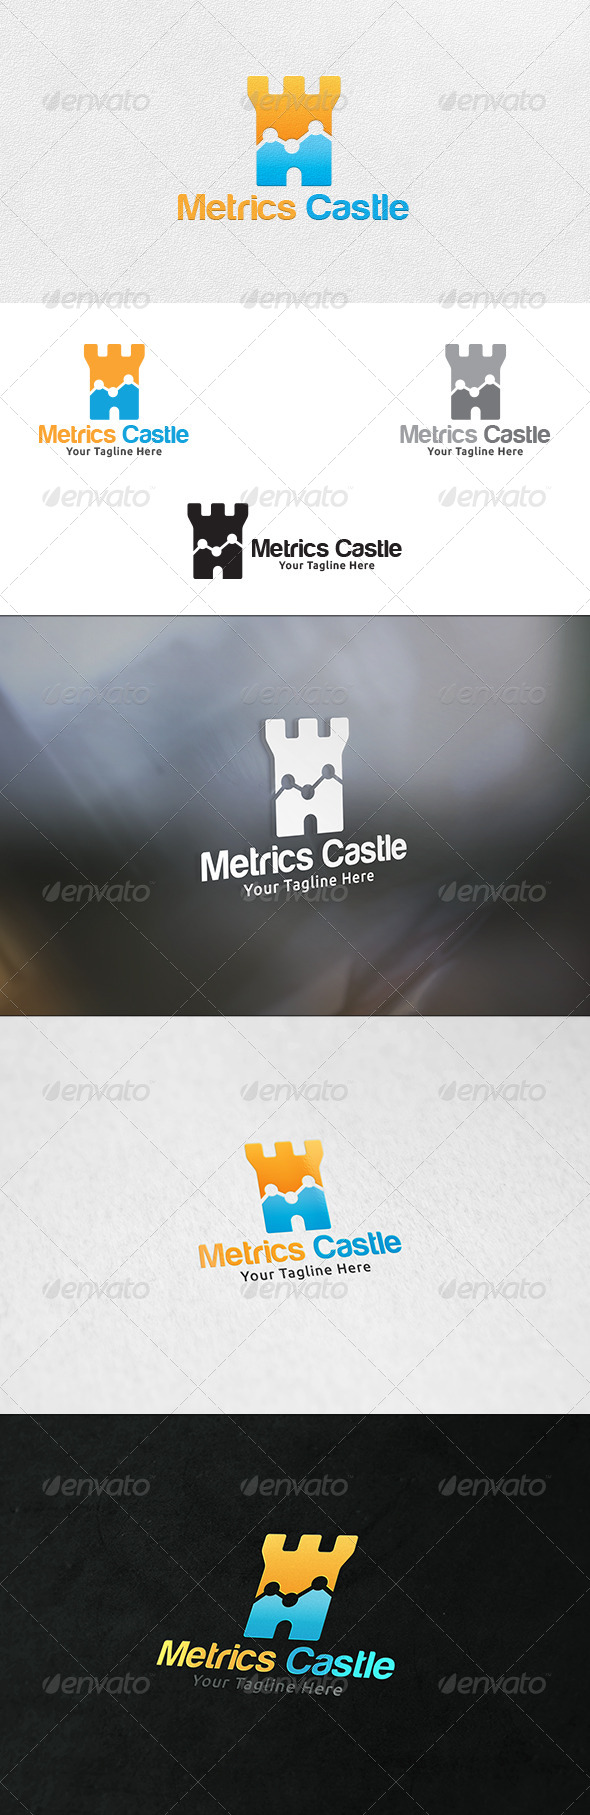 GraphicRiver Metrics Castle Logo Template 7161841